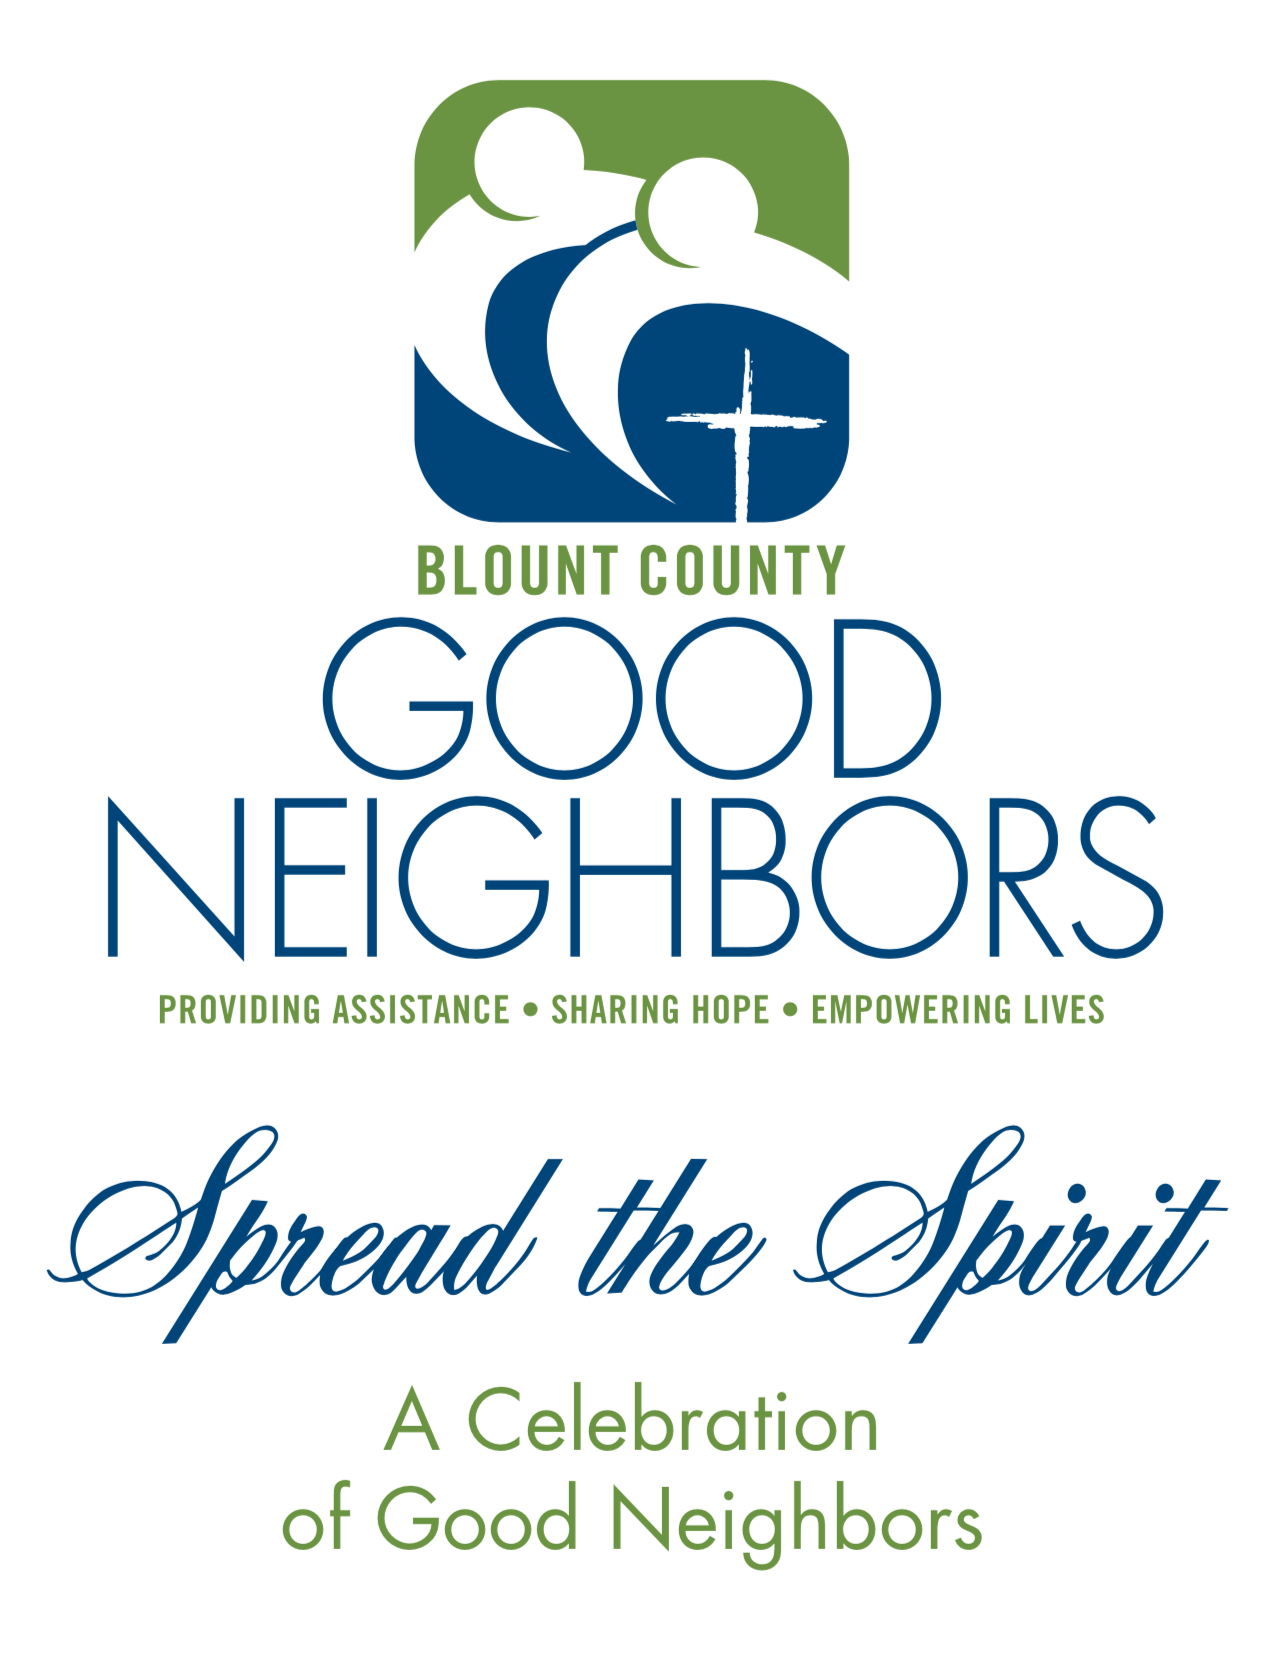 Spirit of Good Neighbors Dinner 2019 - Join us for our 7th Annual Spread the Spirit dinner!We will gather together to acknowledge and honor many of the good neighbors of Blount County.The event will take place at New Providence Presbyterian Church on November 7th at 6:00 p.m.Please nominate a good neighbor by clicking the button below. Nominations are due by October 18, 2019. Thank you!